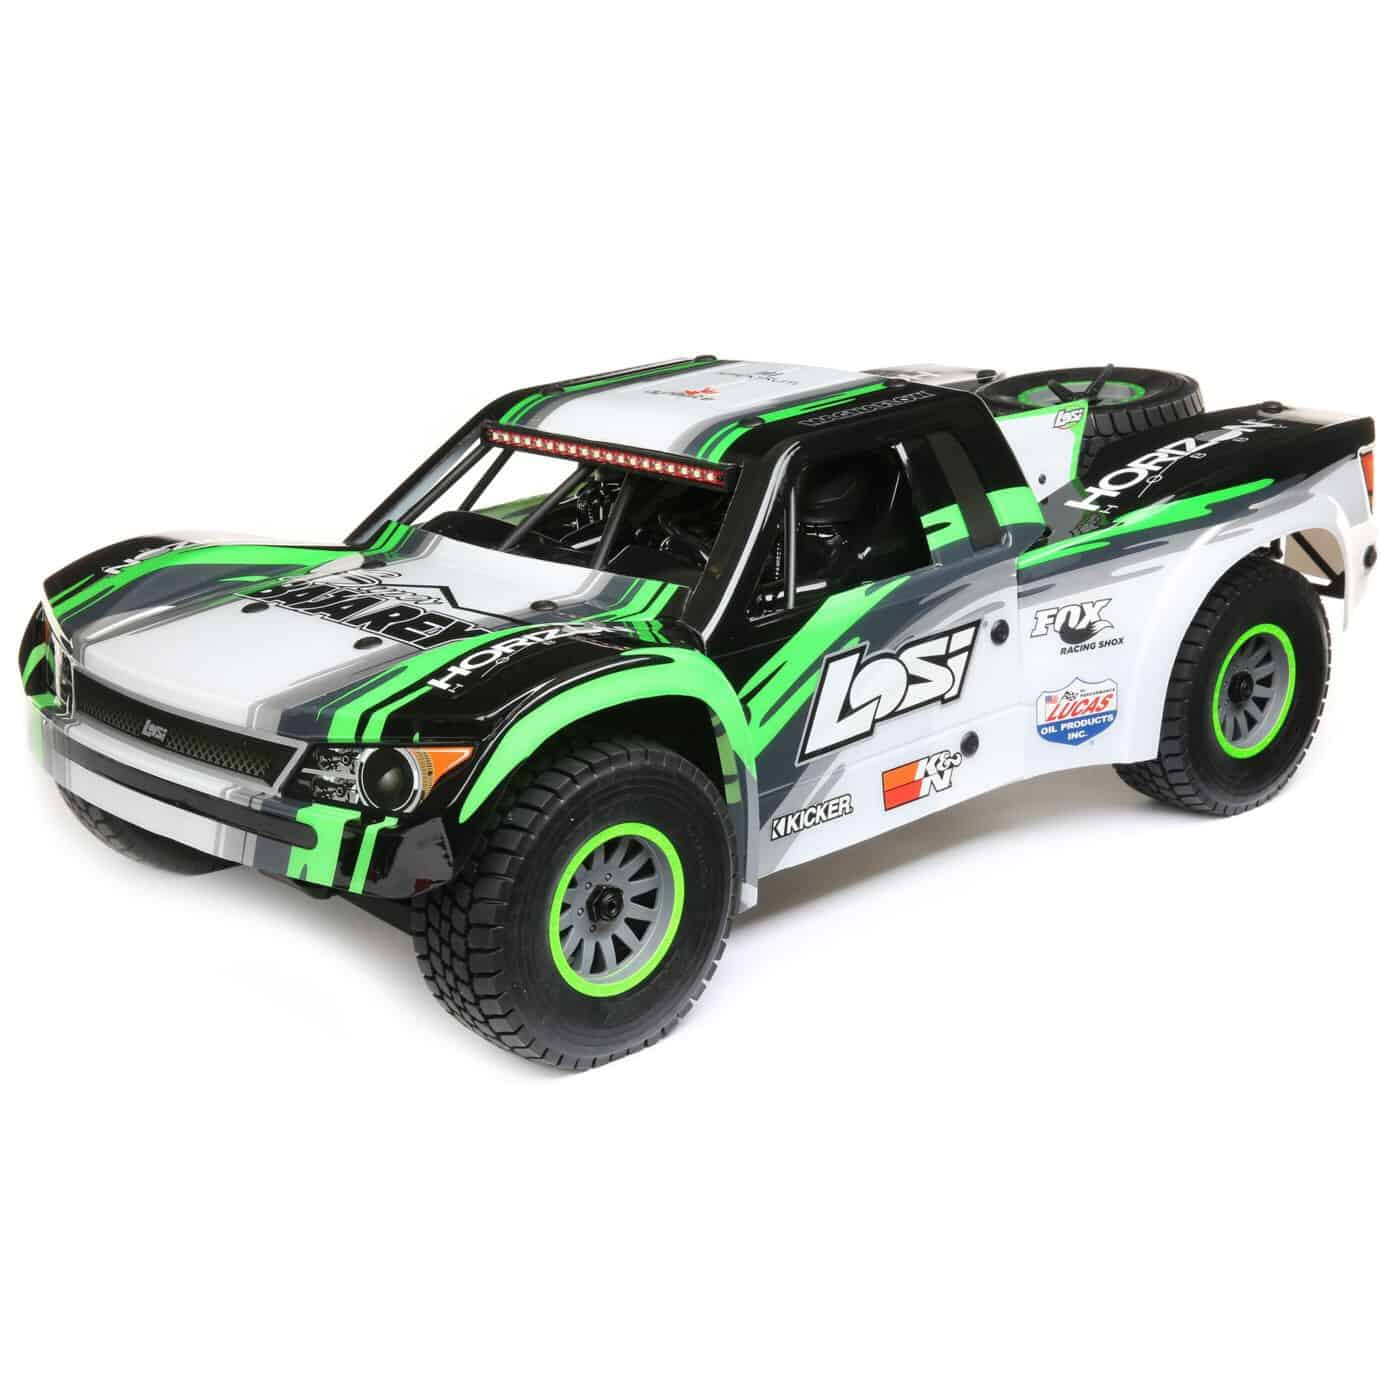 Big-time Fun: Losi's Super Baja Rey 1/6-scale Desert Truck